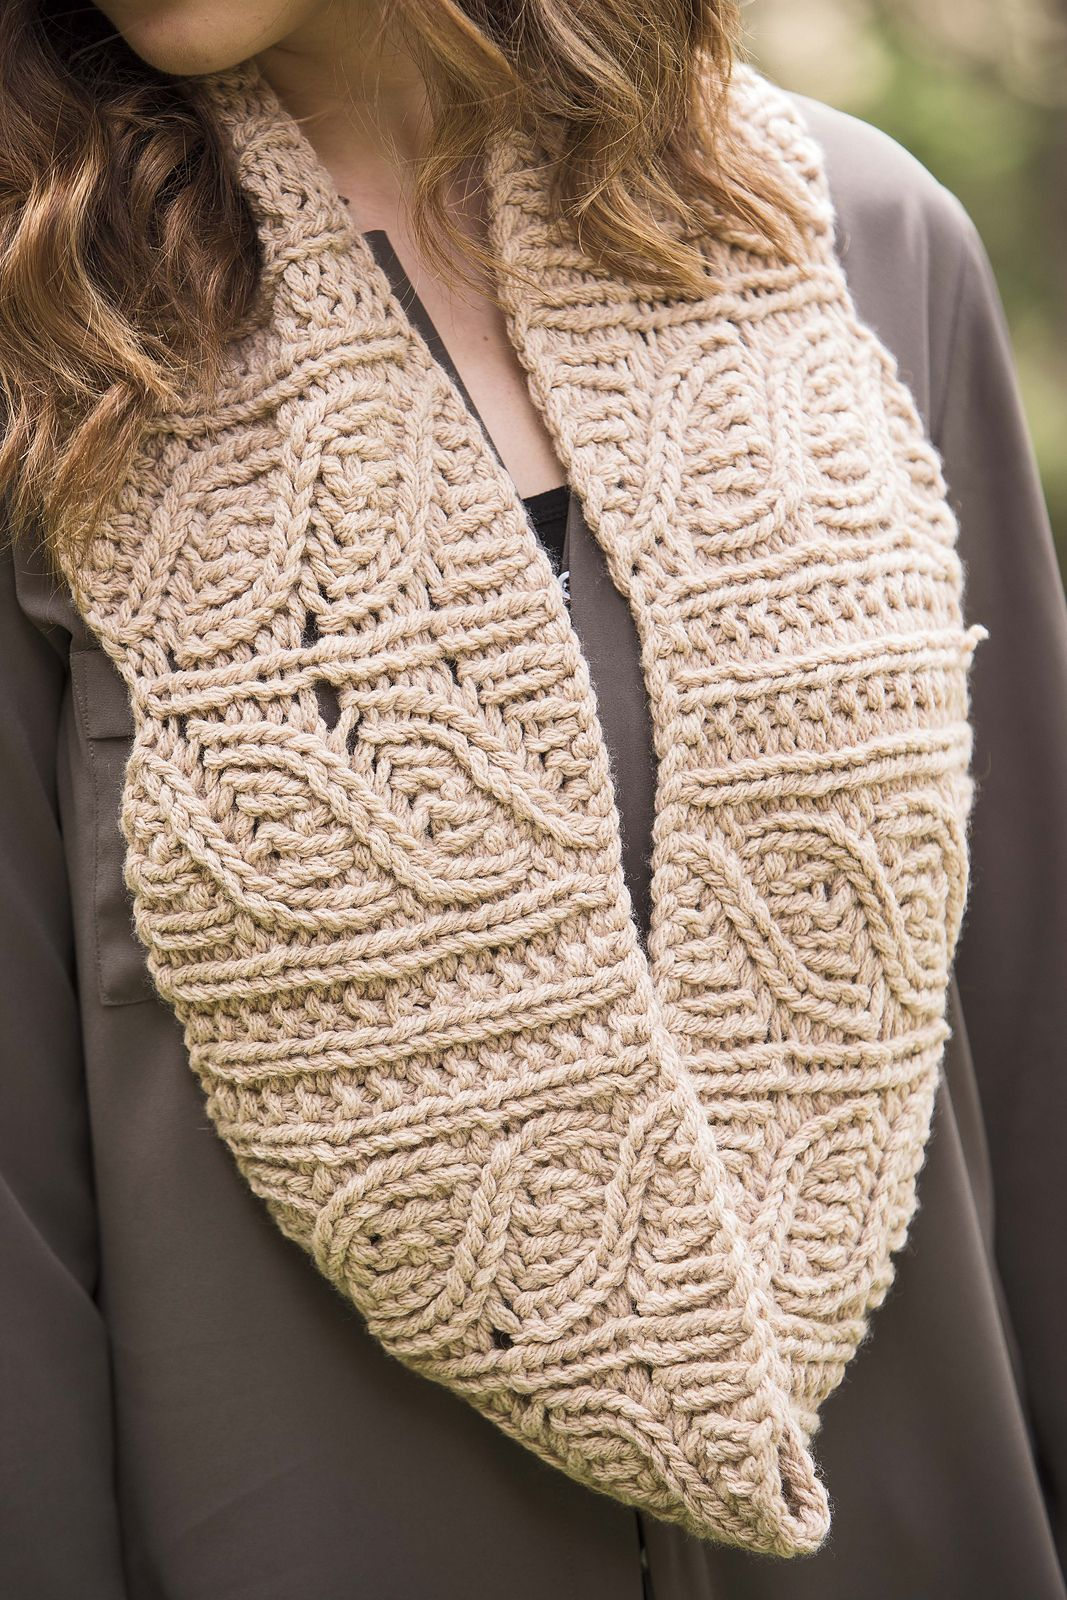 Knitting Pattern For Bear Lake Cowl Reversible Infinity Scarf With